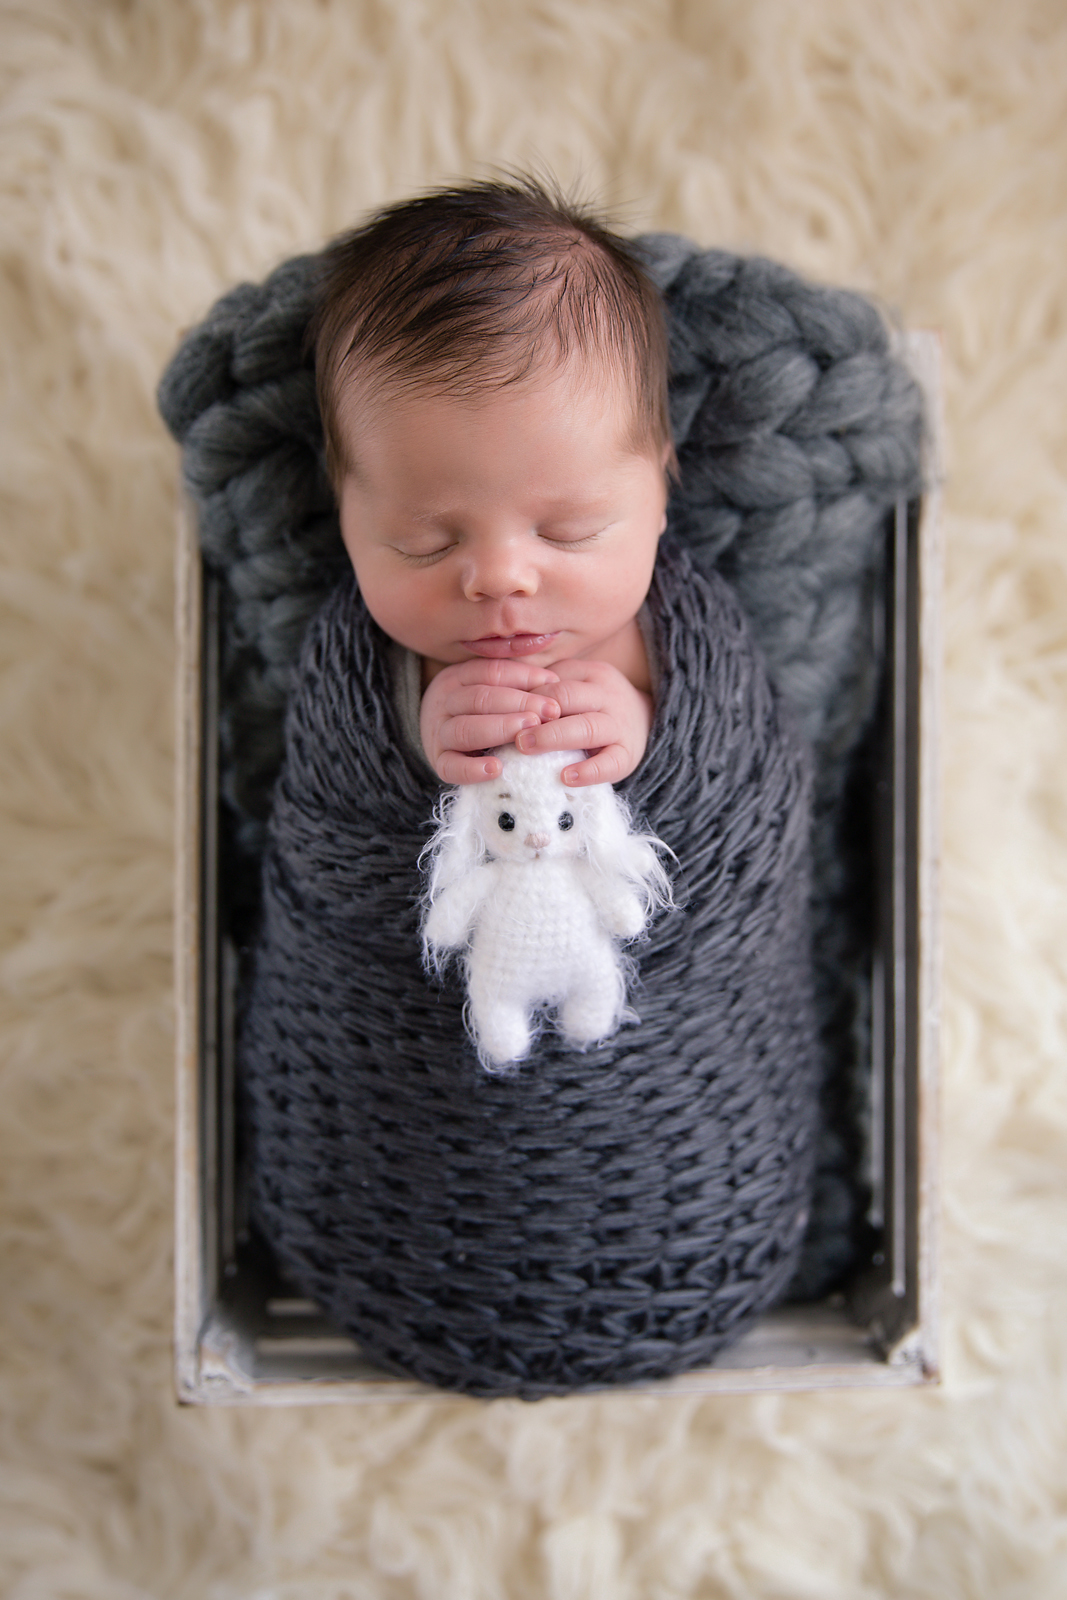 Newborn baby boy photoshoot ideas. Calgary and Airdrie newborn baby photographer - Milashka Photography. Baby boy is wrapped in a grey wrap and is posed in a white crate.